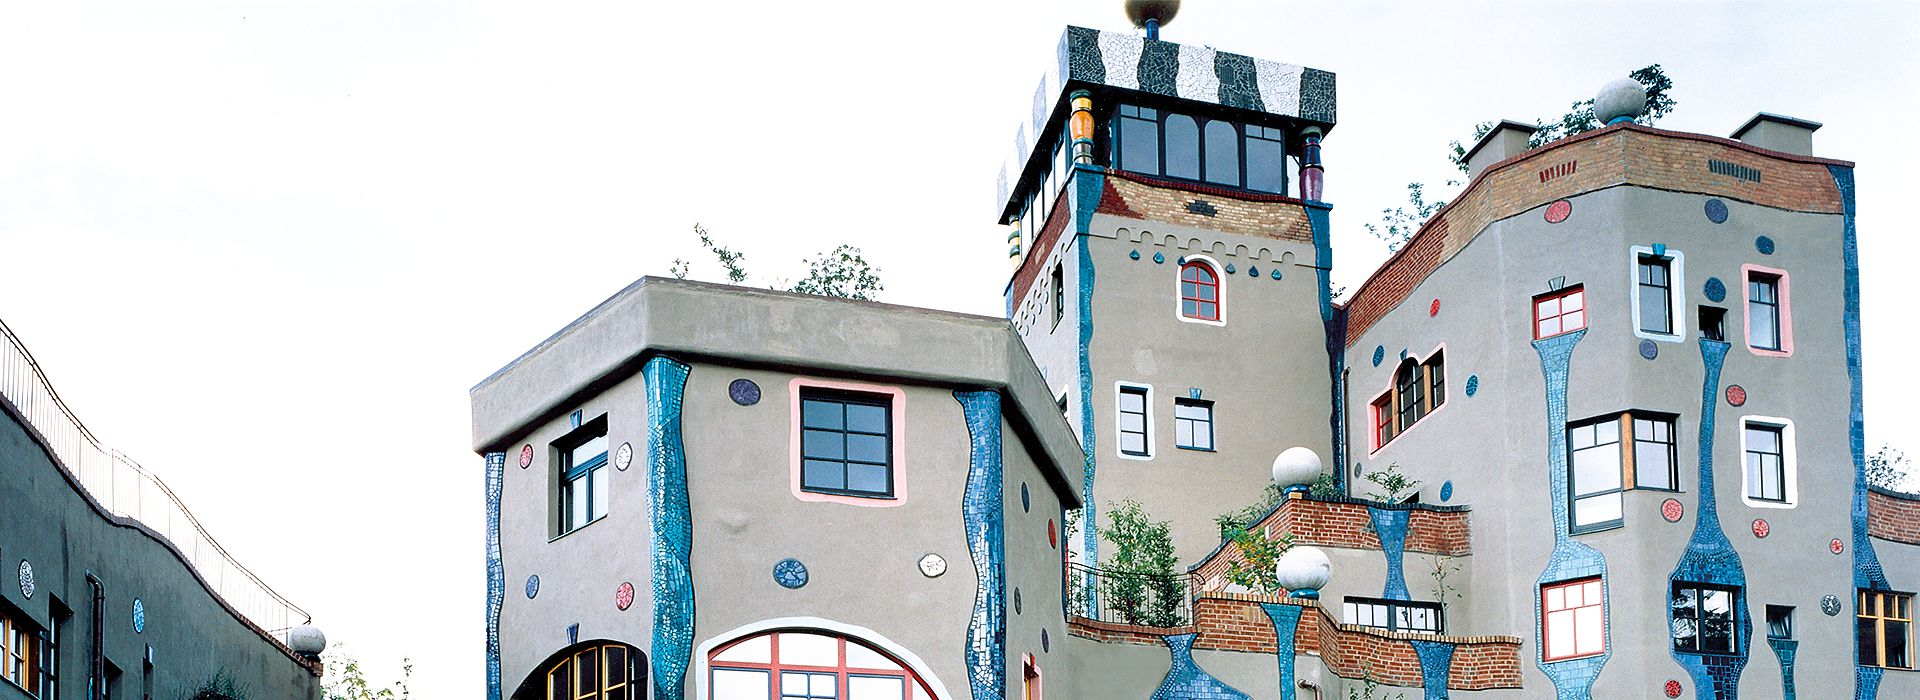 Hundertwasserhaus, Bad-Soden / Germany